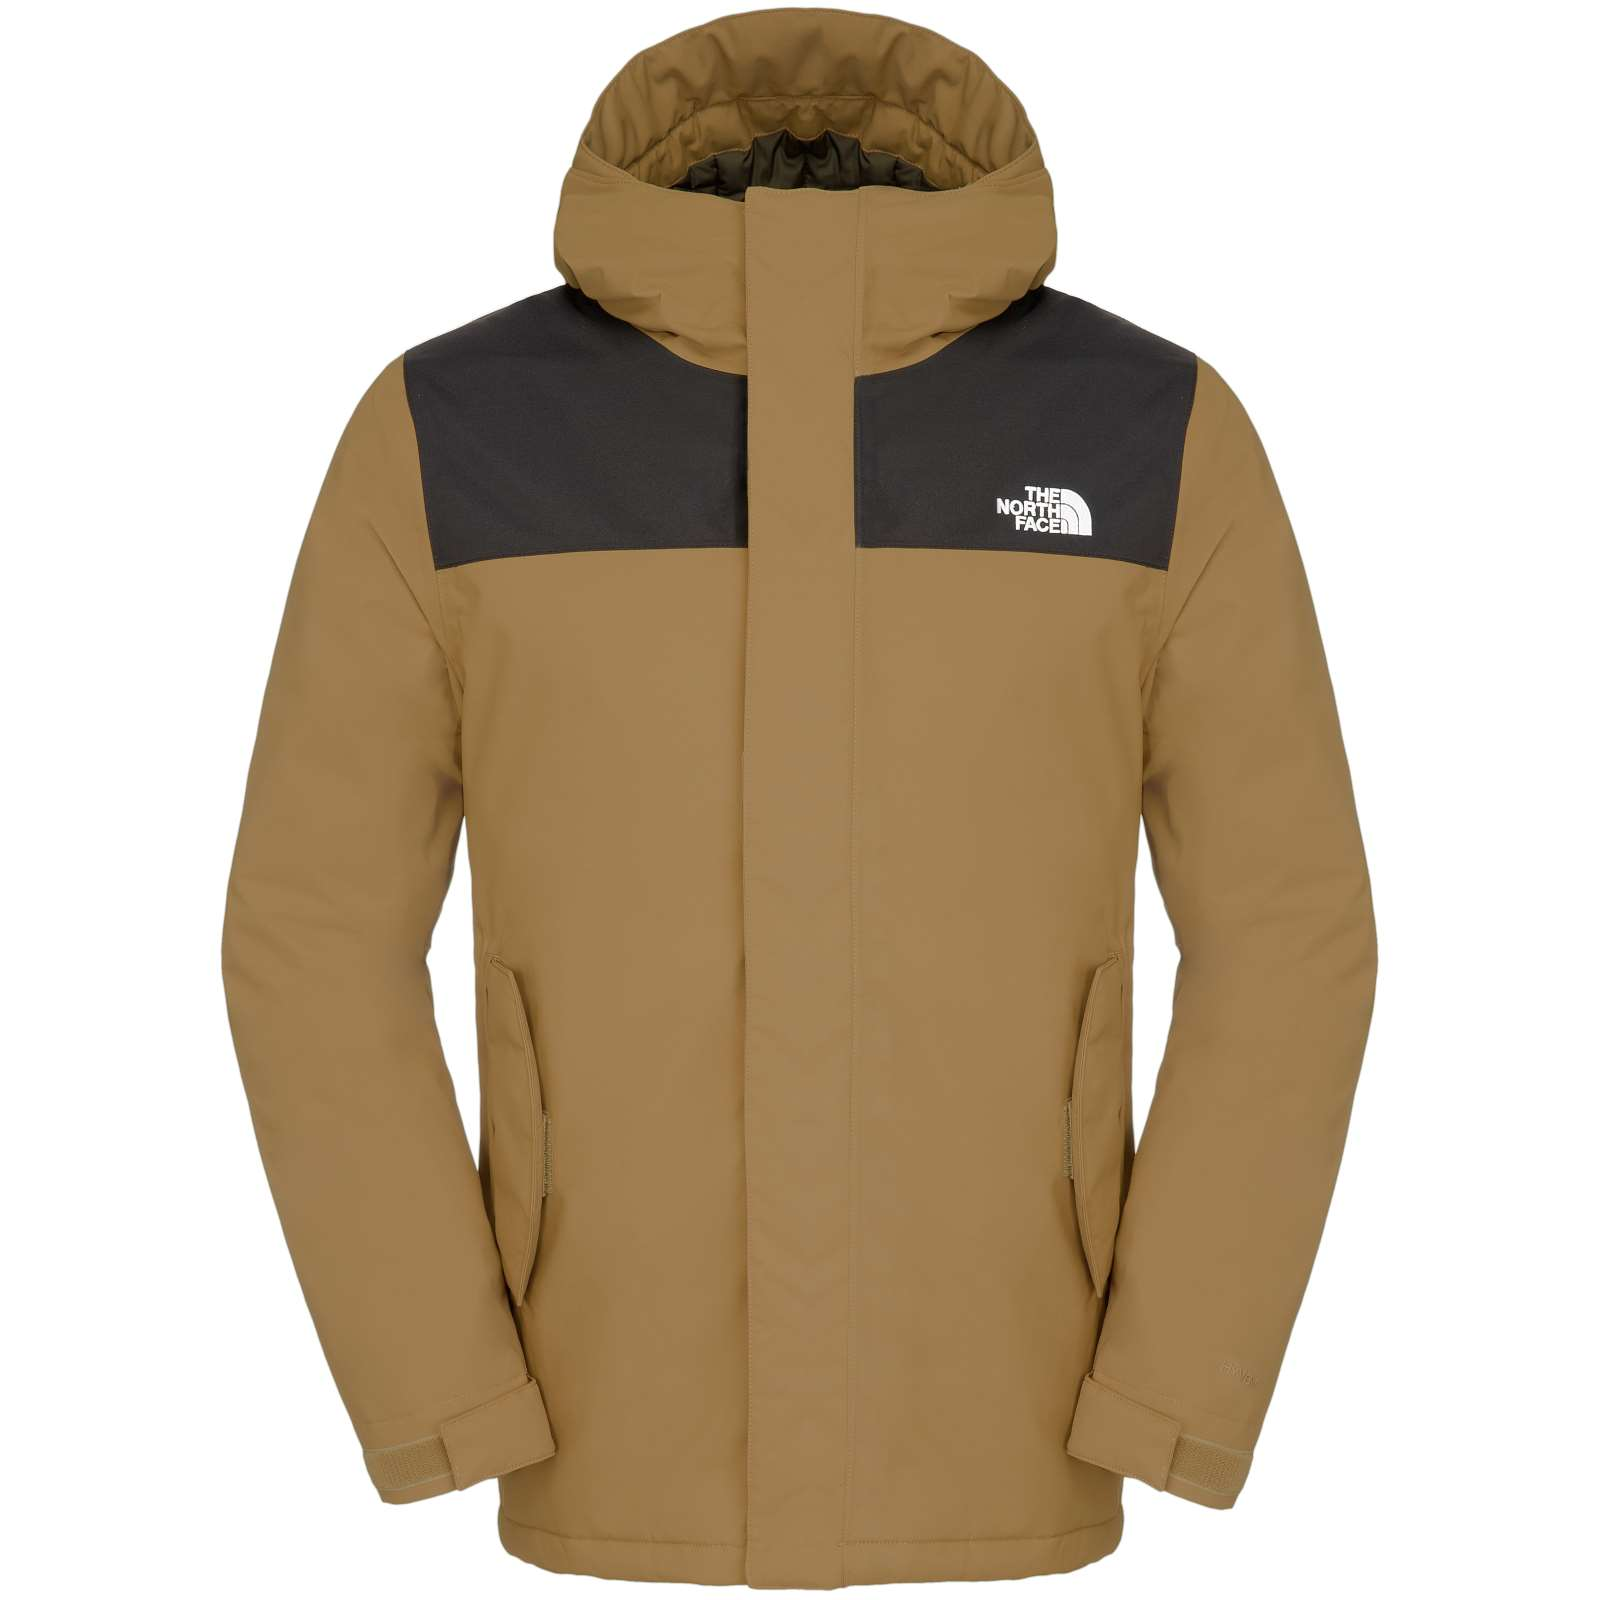 d988370373c3 Buy The North Face Men s Meloro Parka from Outnorth